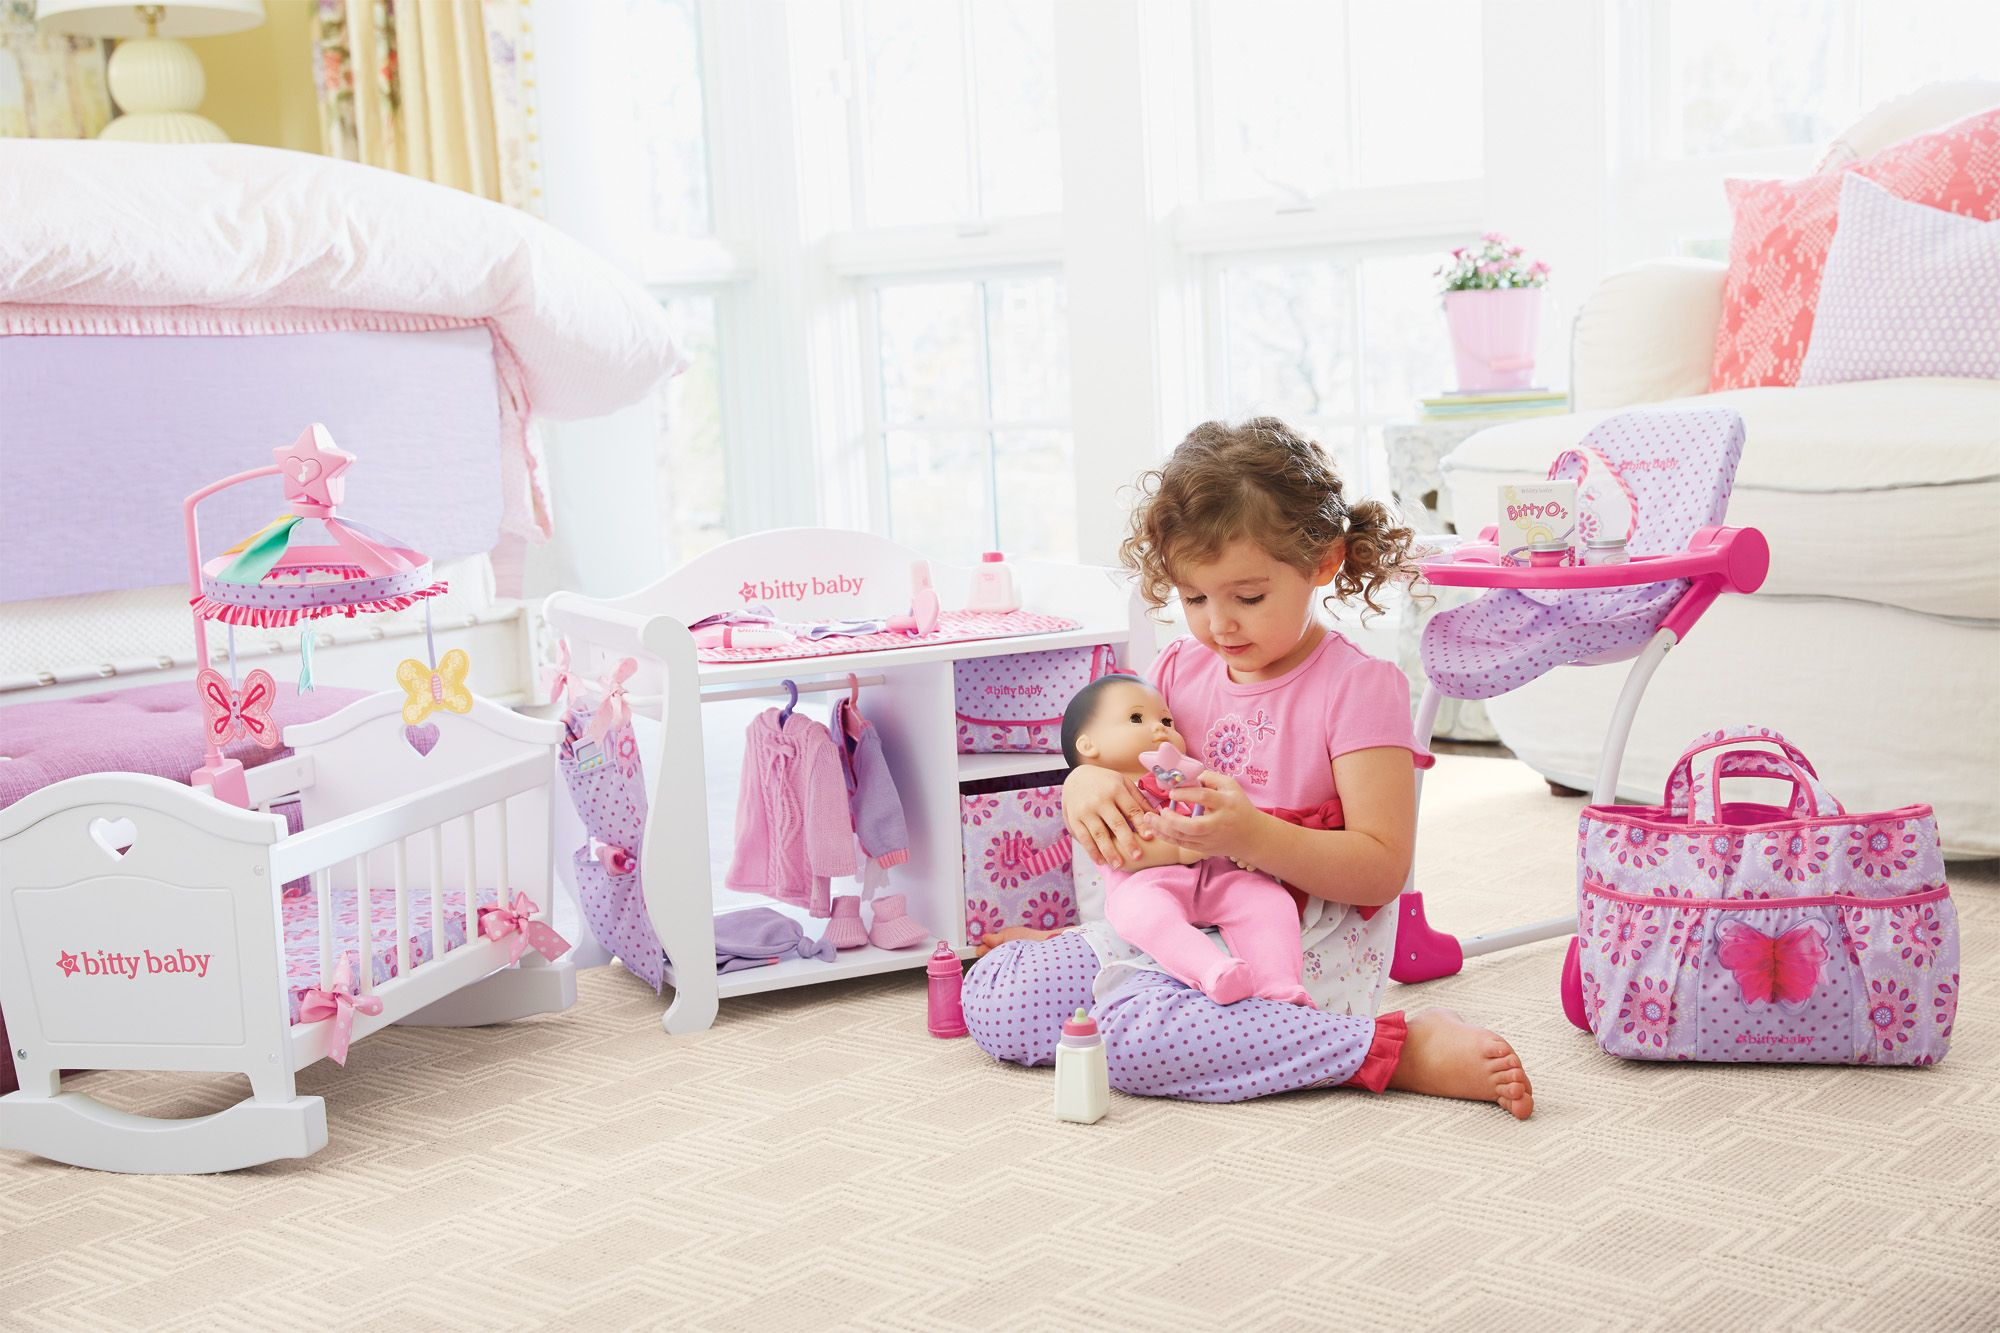 New For Bitty Baby   Baby Playroom, Bitty Baby, Bitty Baby